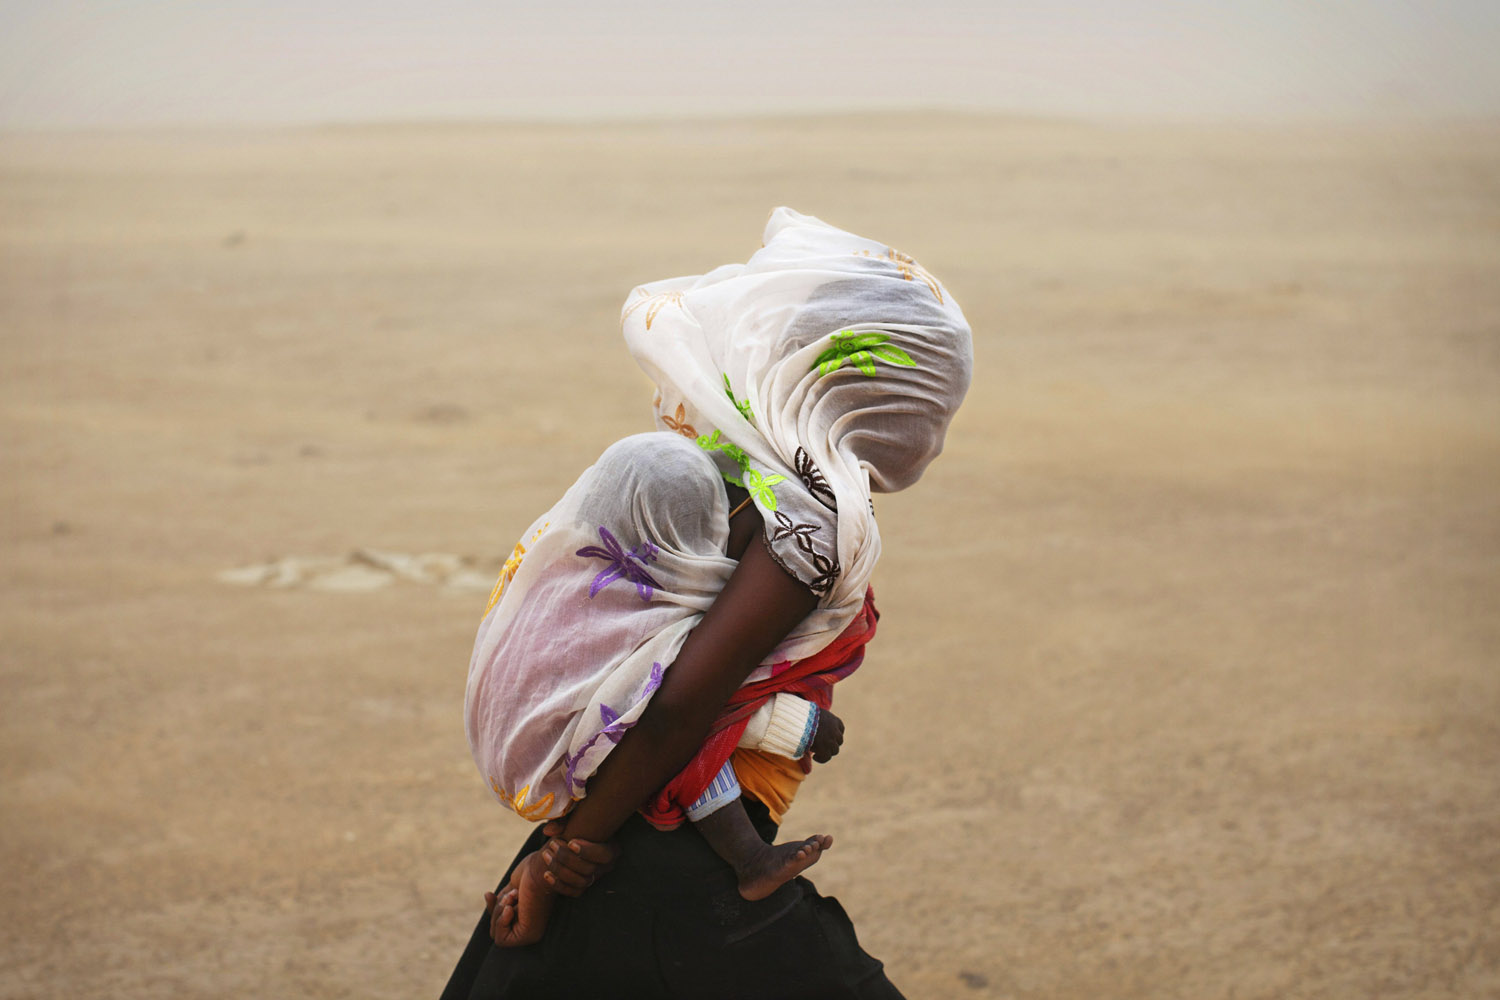 July 29, 2013. A woman carrying her baby and wrapped with a shawl walks through a sandstorm in Timbuktu, Mali.